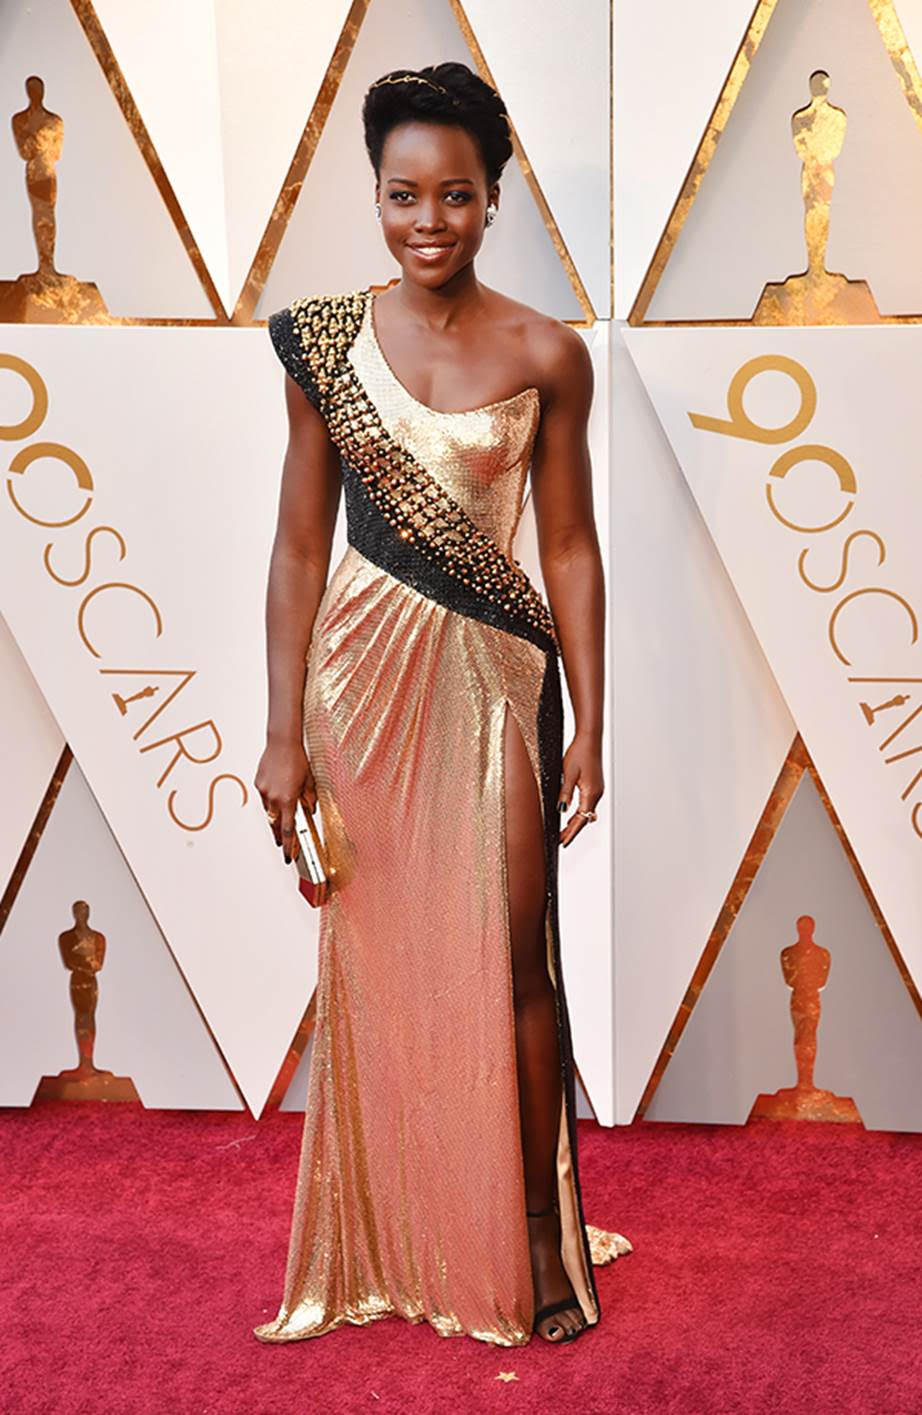 Oscars dress Lupita Nyong'o